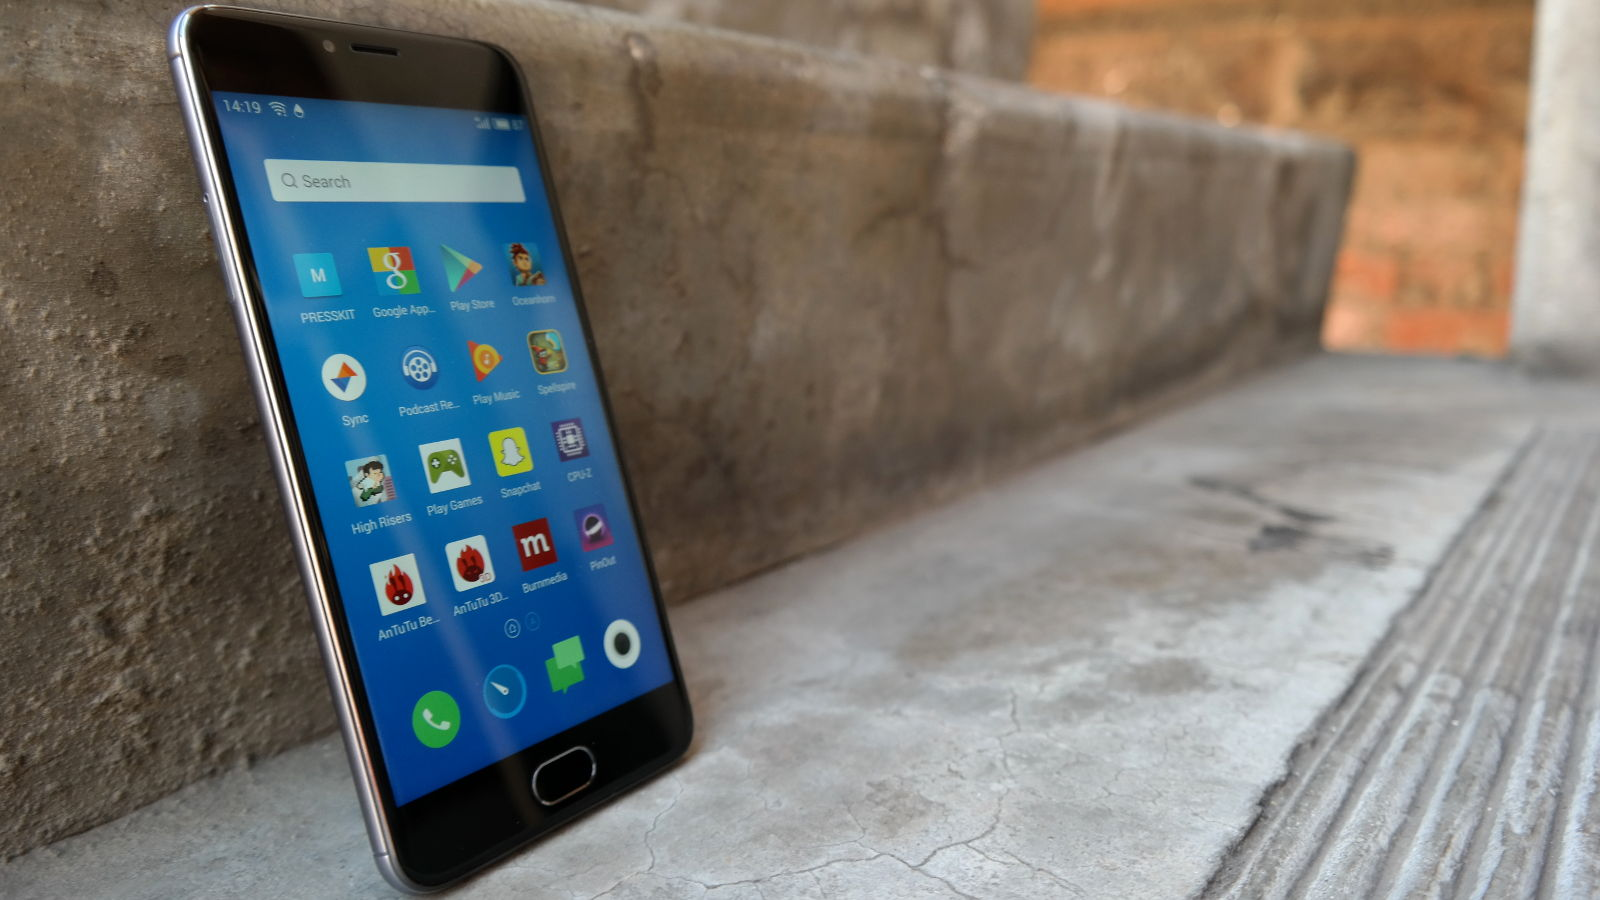 Meizu M3 Note review: is this the budget phone for m3